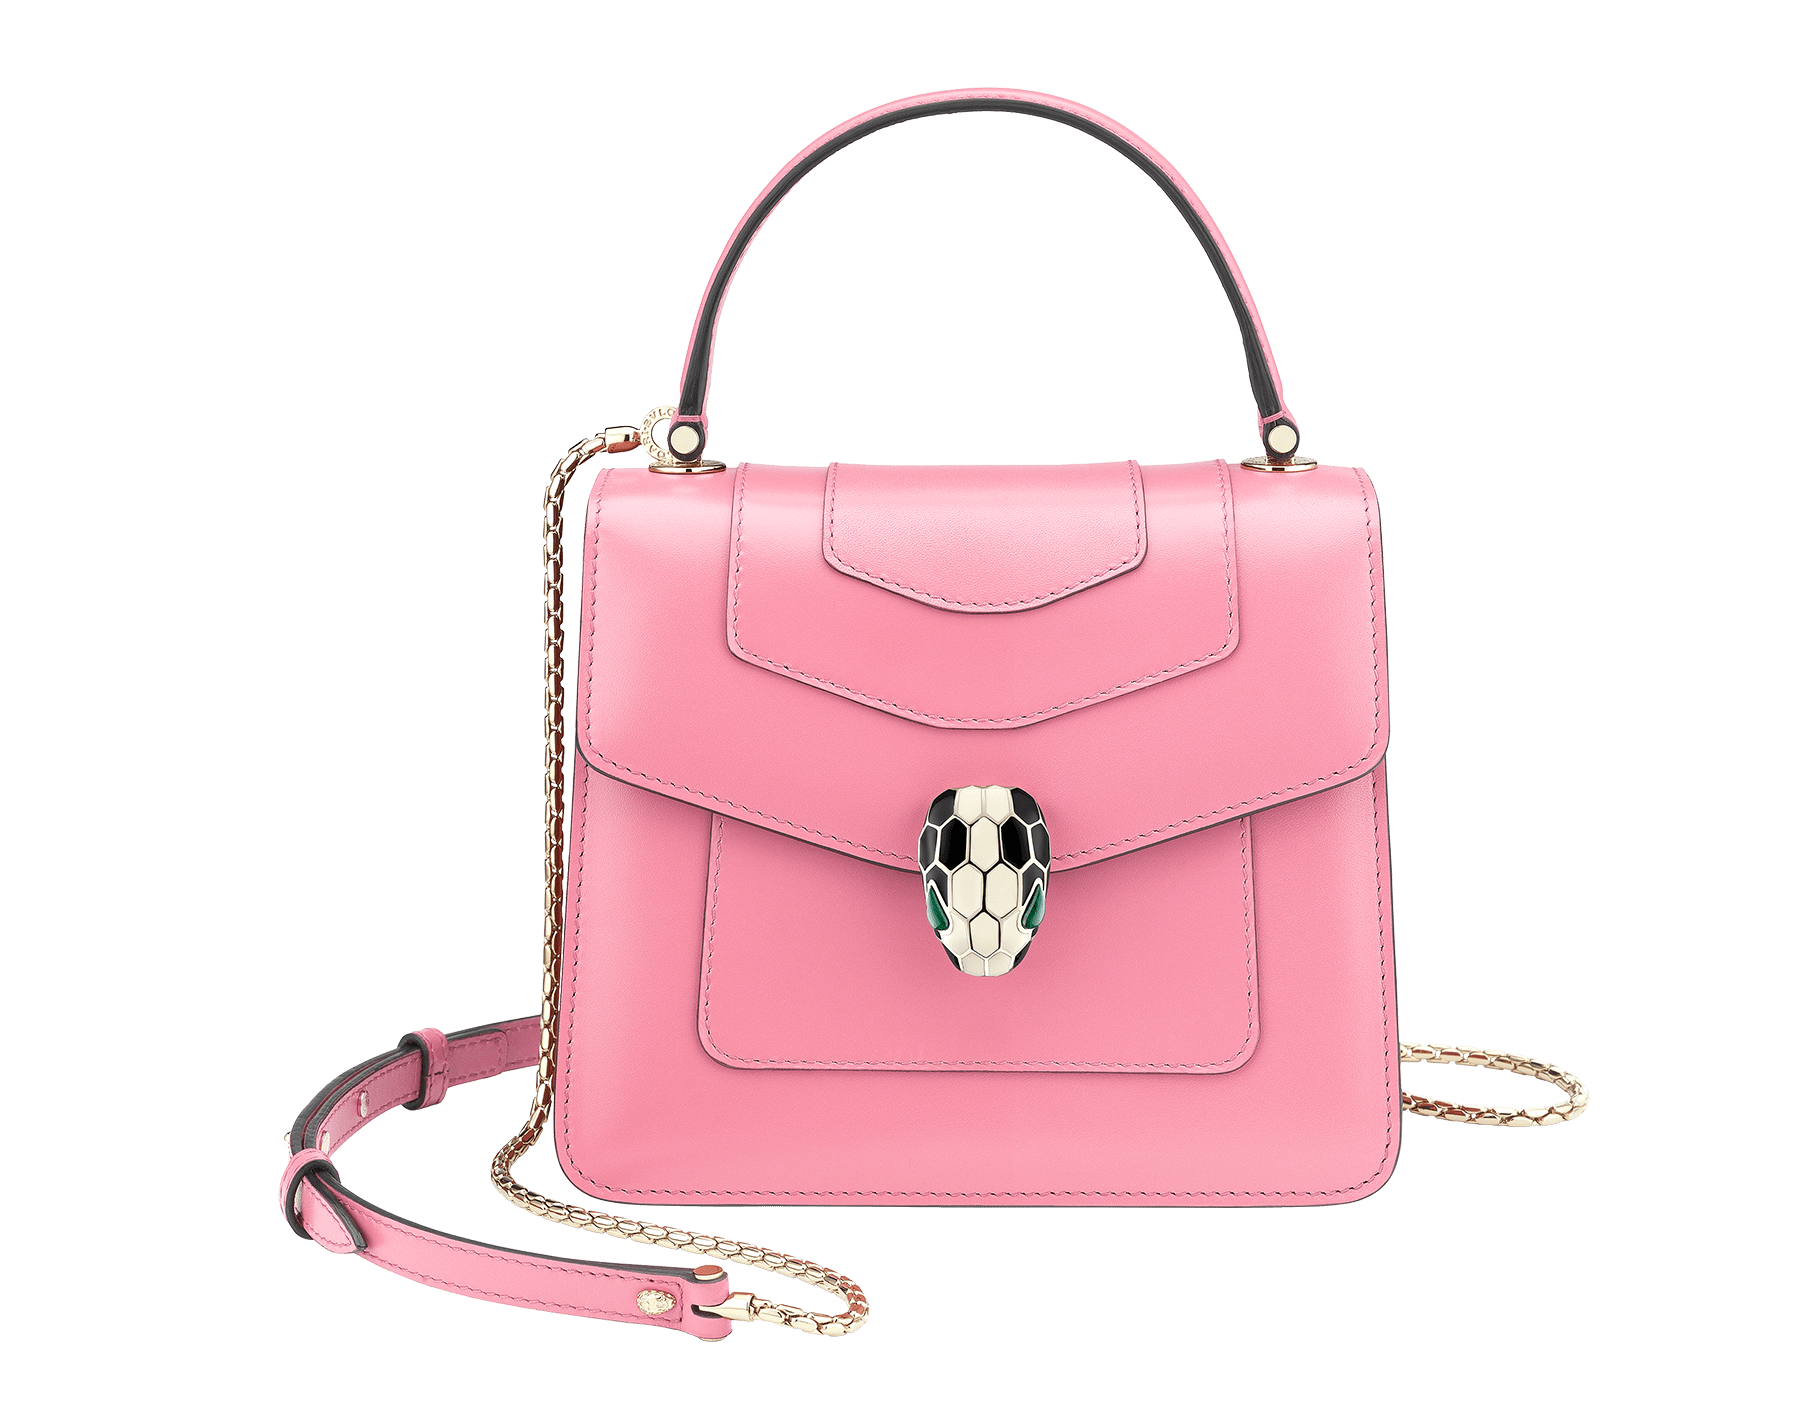 """Serpenti Forever"" crossbody bag in candy quartz calf leather. Iconic snakehead closure in light gold plated brass enriched with black and white enamel and green malachite eyes 287029 image 1"